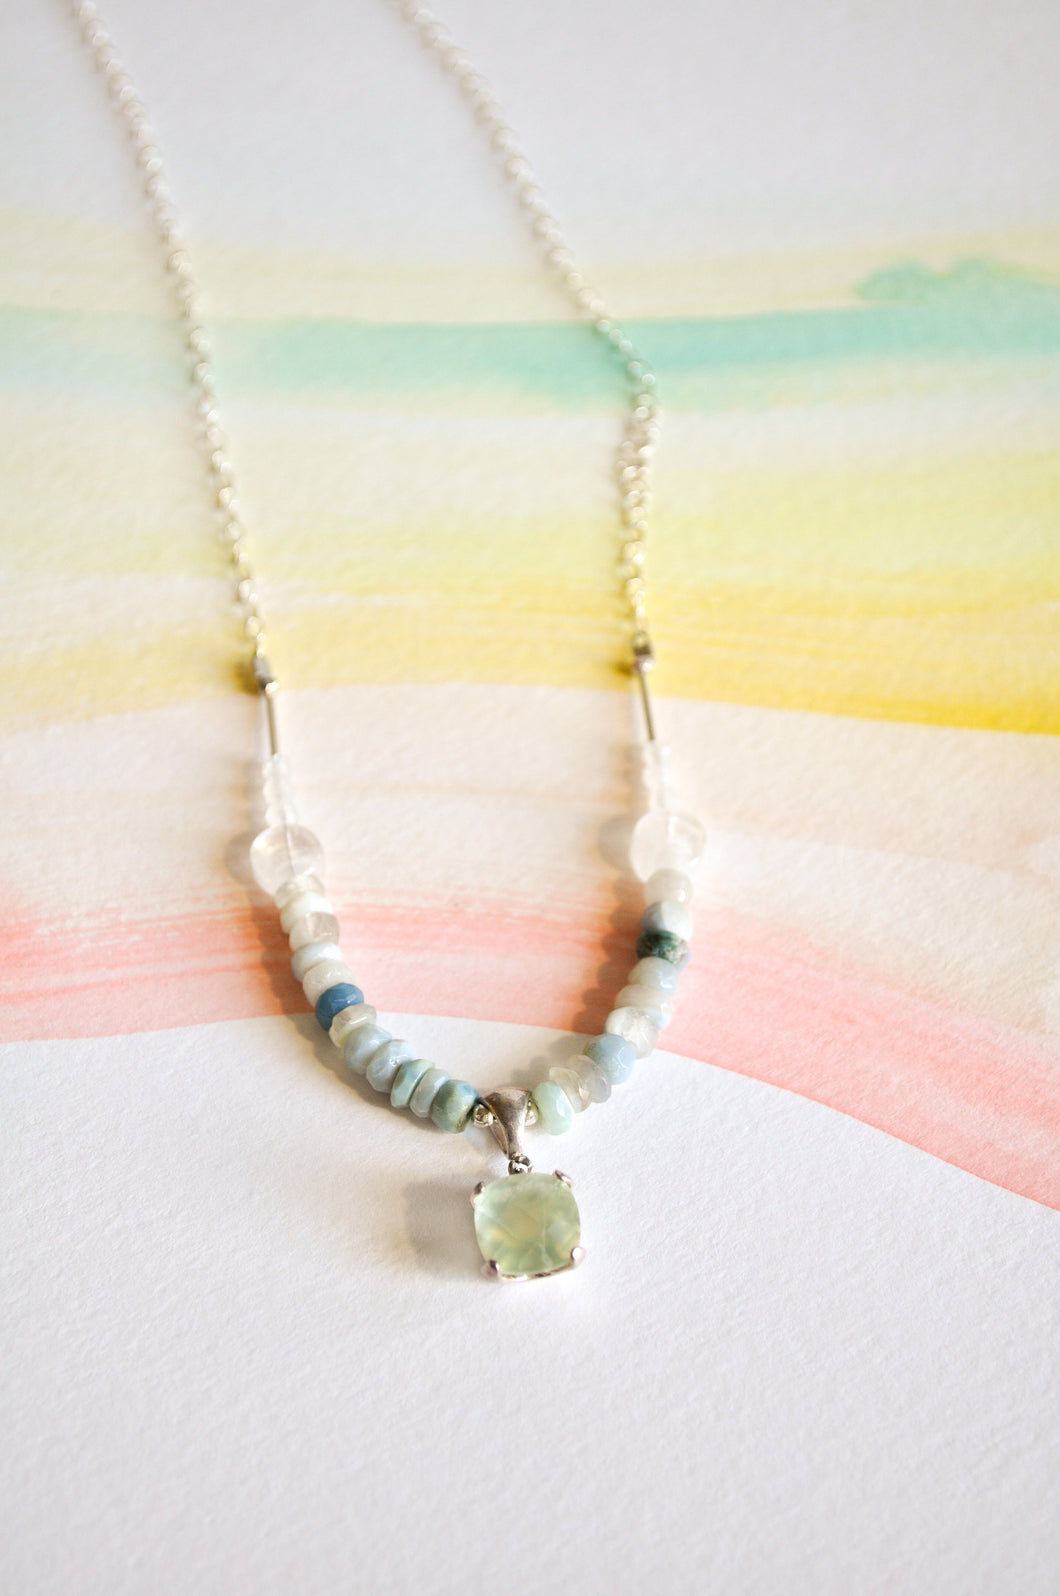 Prehnite and Boulder Opal Necklace